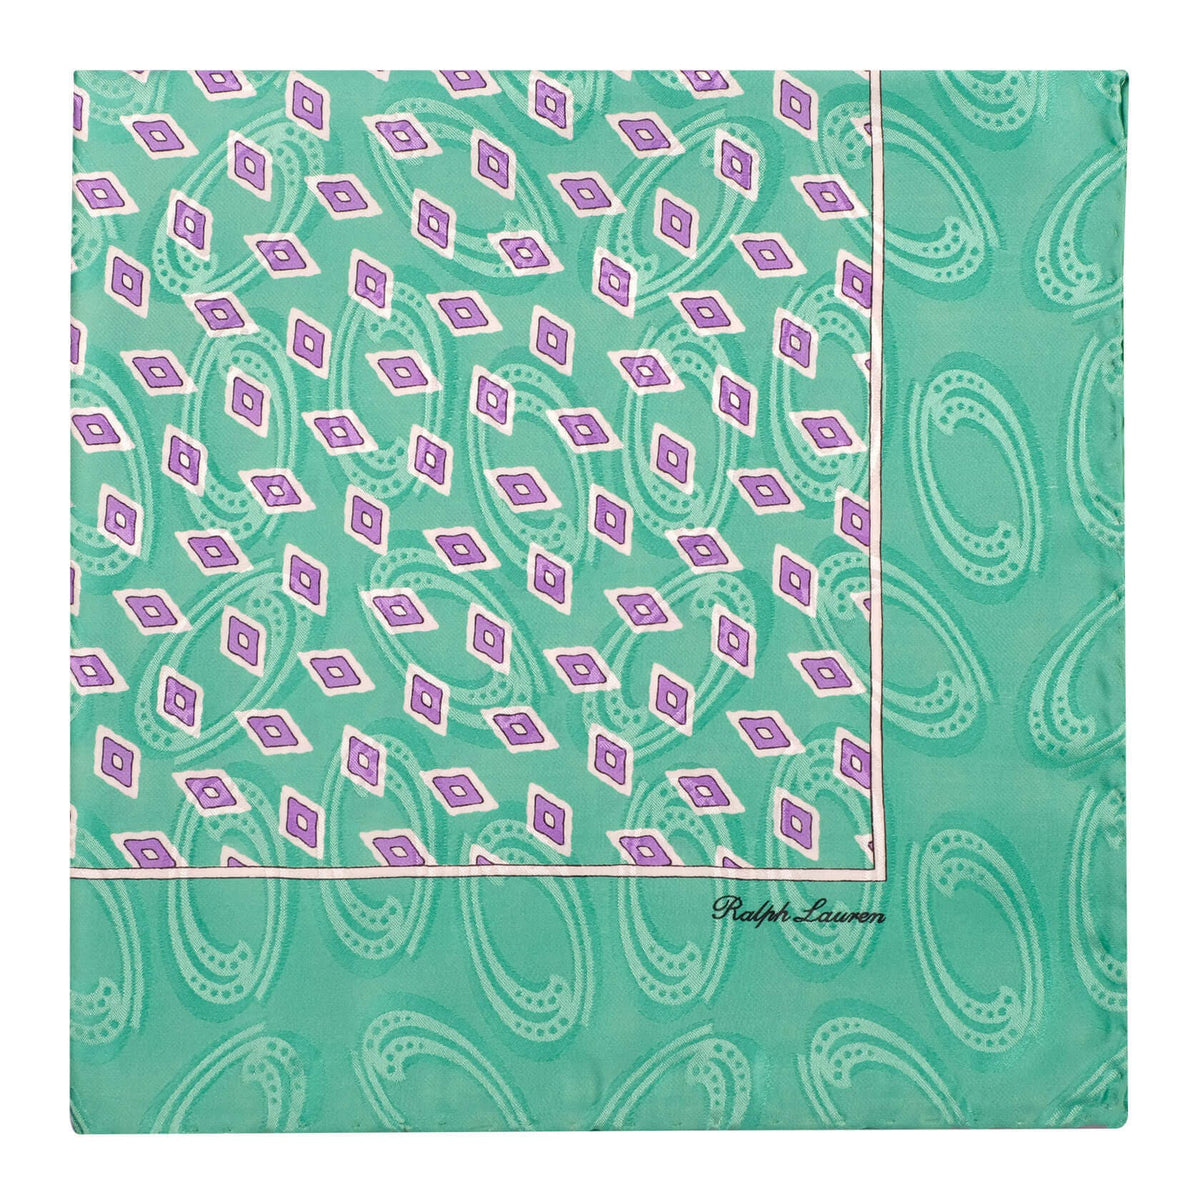 Ralph Lauren Diamond Pattern Foulard Pocket Square - Green